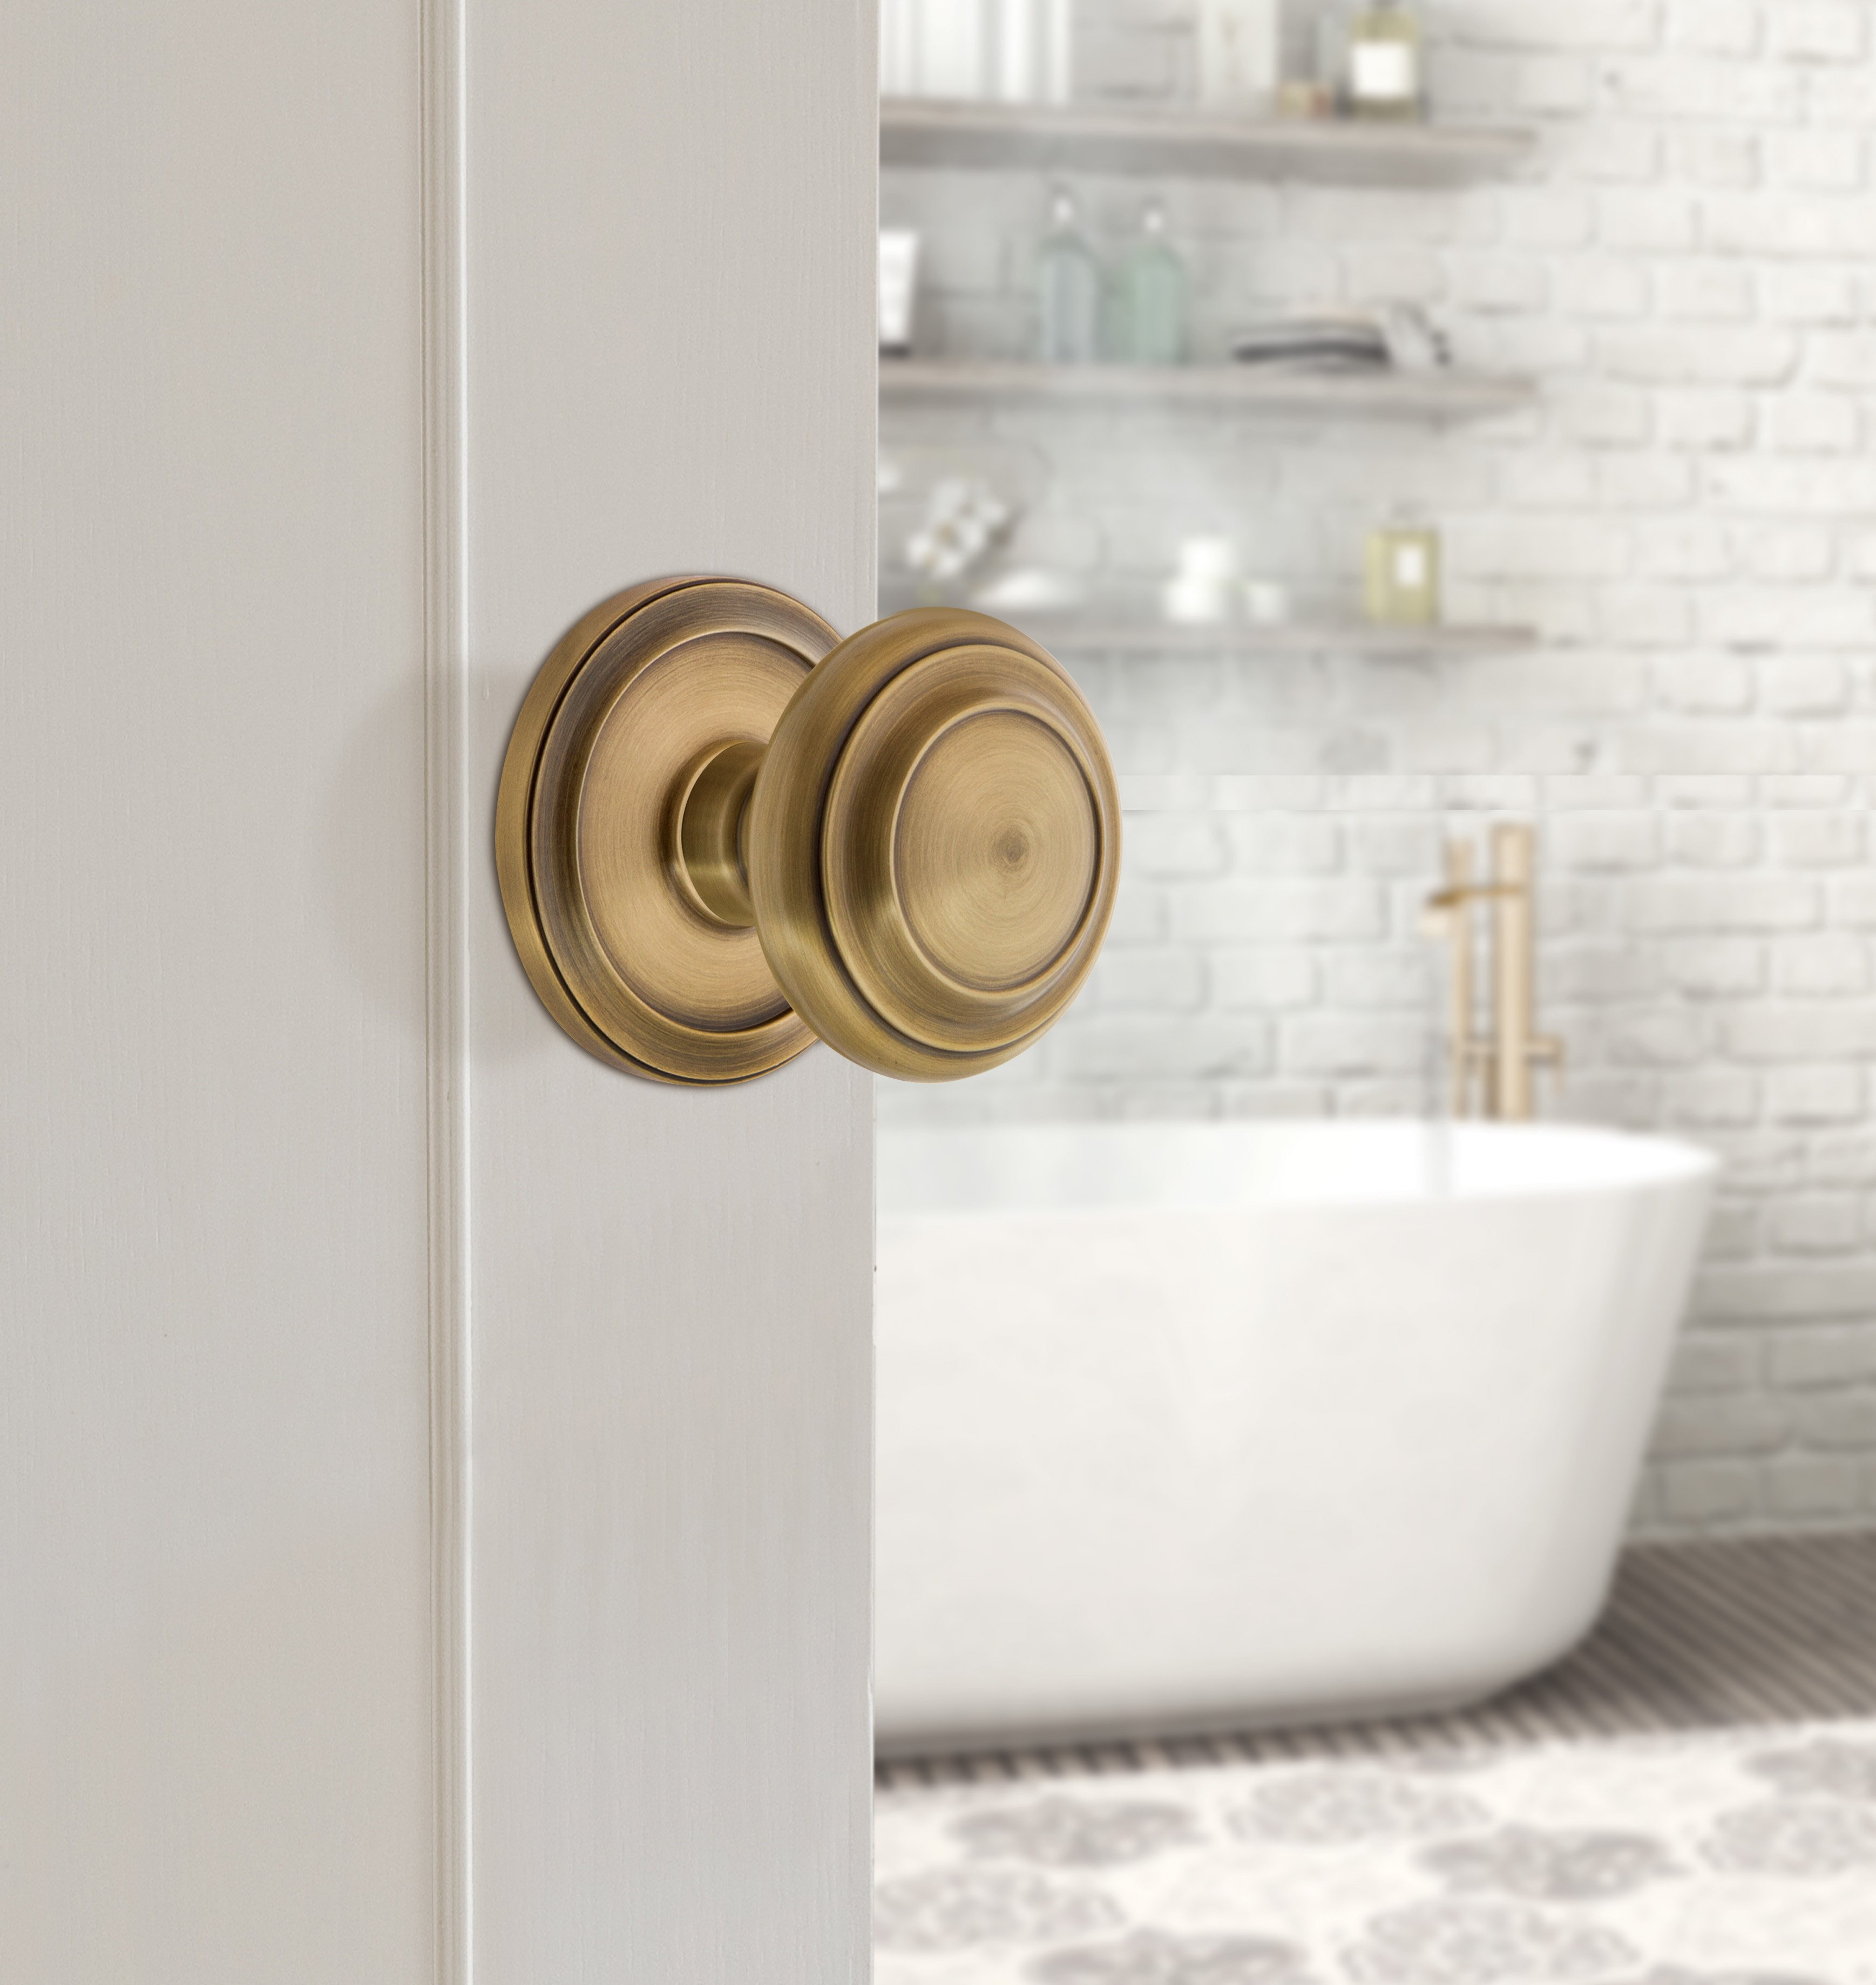 Bedroom Door Knobs with Locks Awesome Circulare Collection Bines Colonial Design Style with